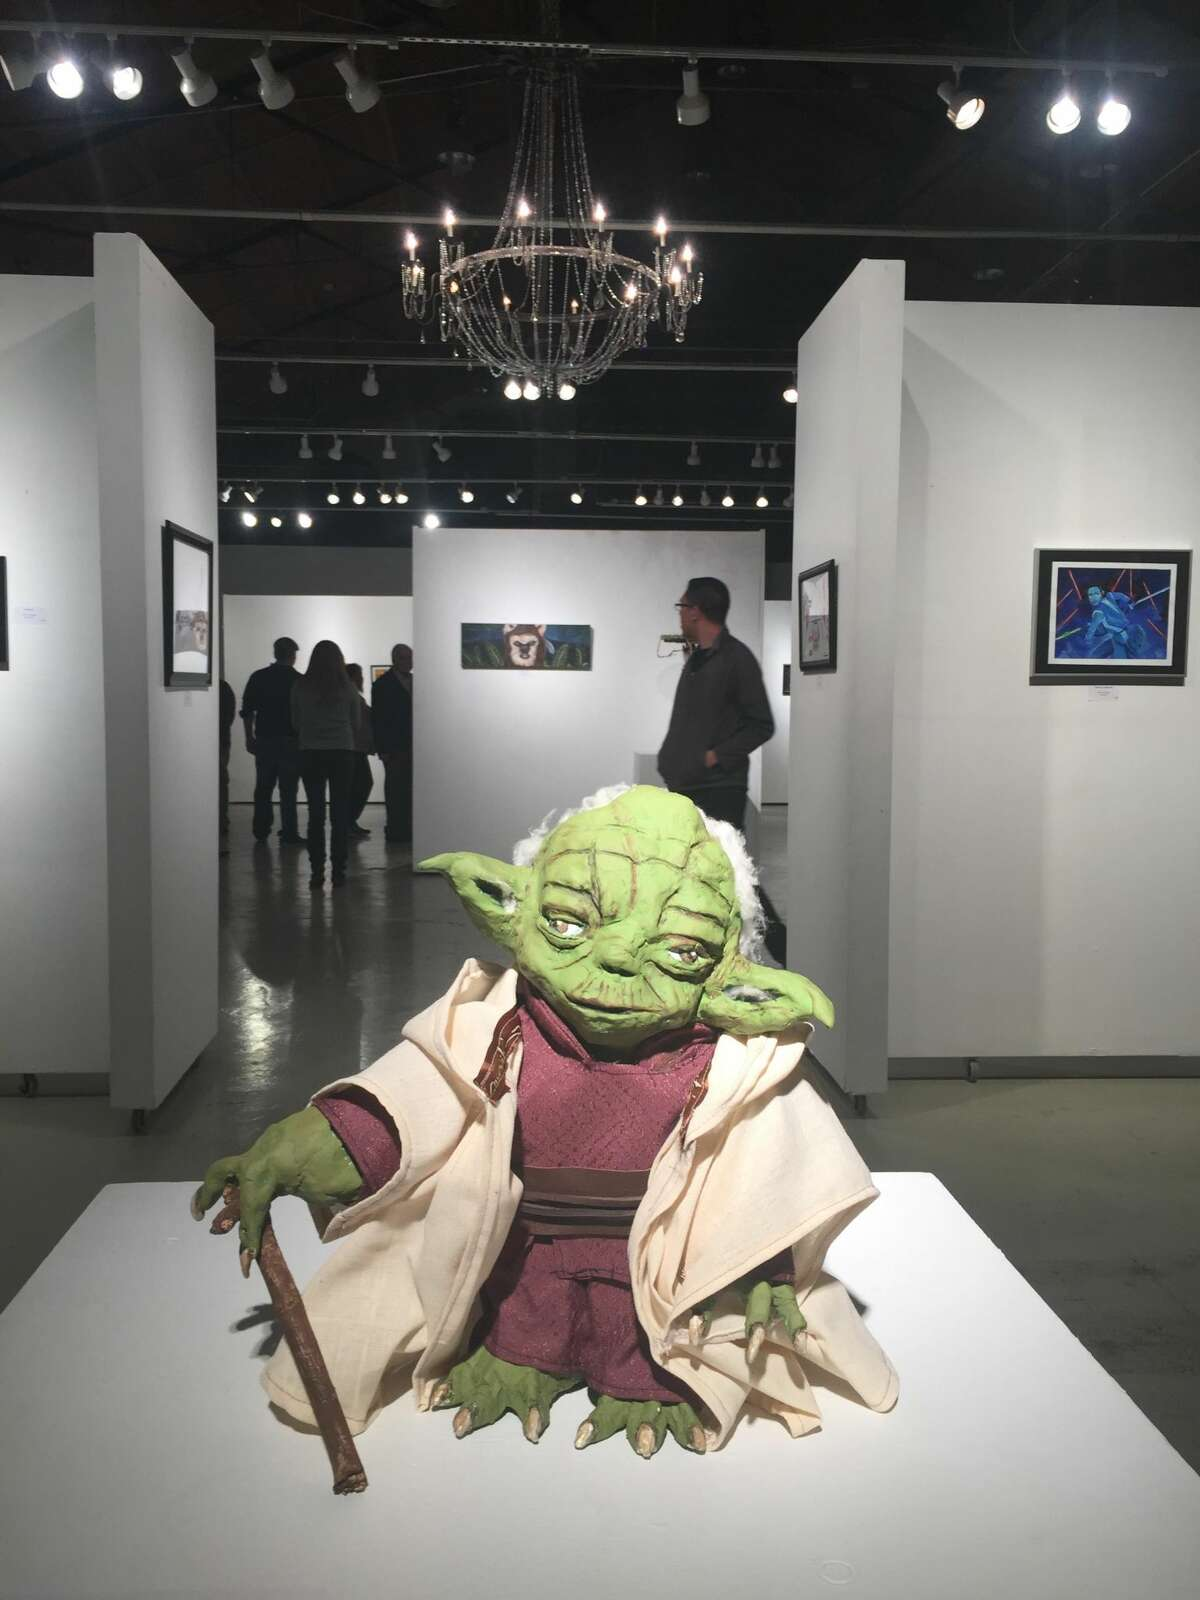 Art is exhibited during the first Art Wars art exhibit in December 2016.